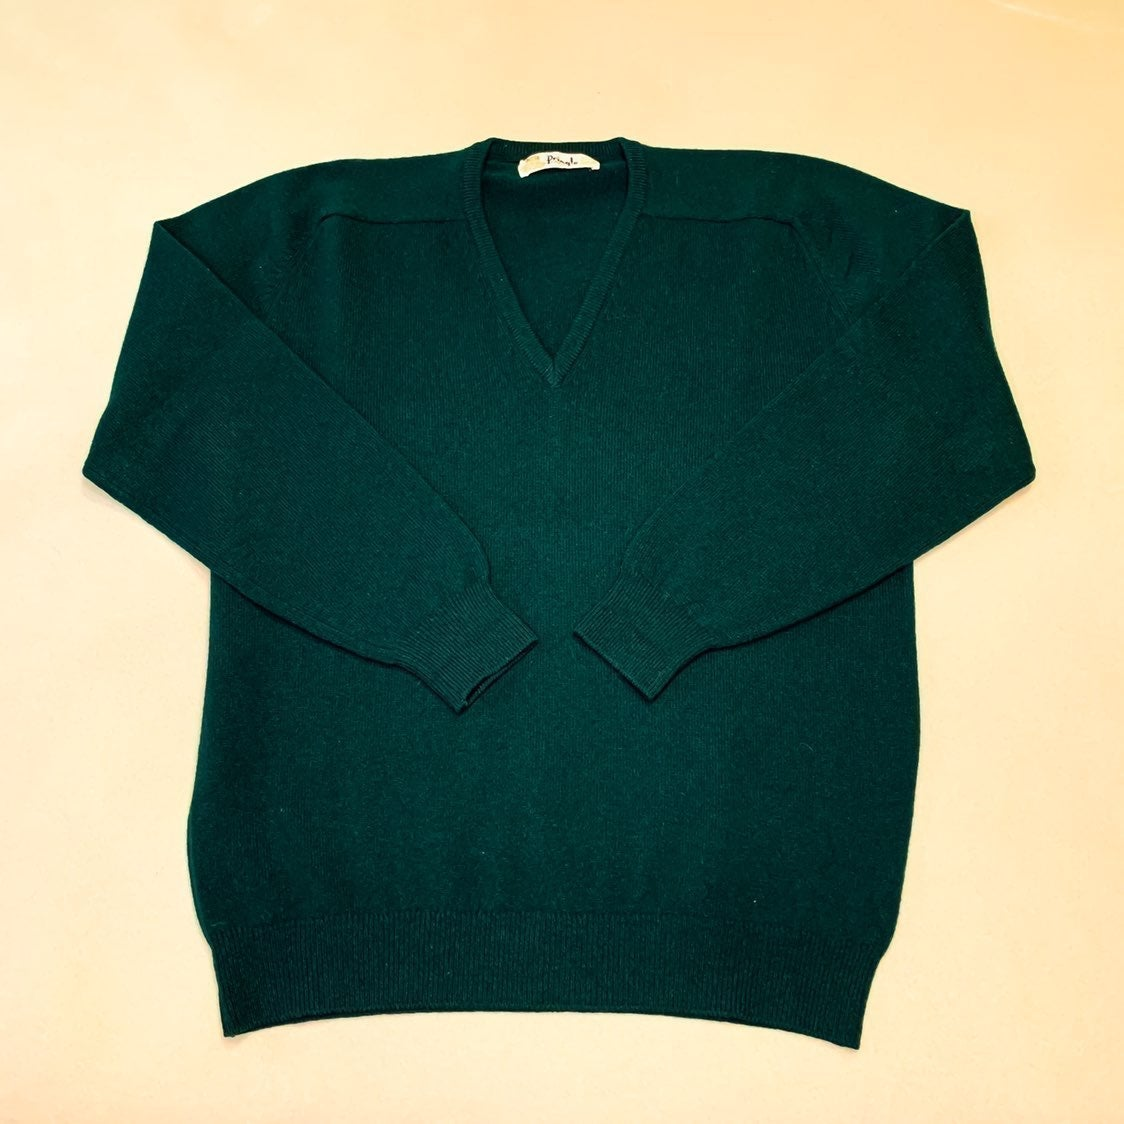 Vintage Pringle lambswool v-neck sweater